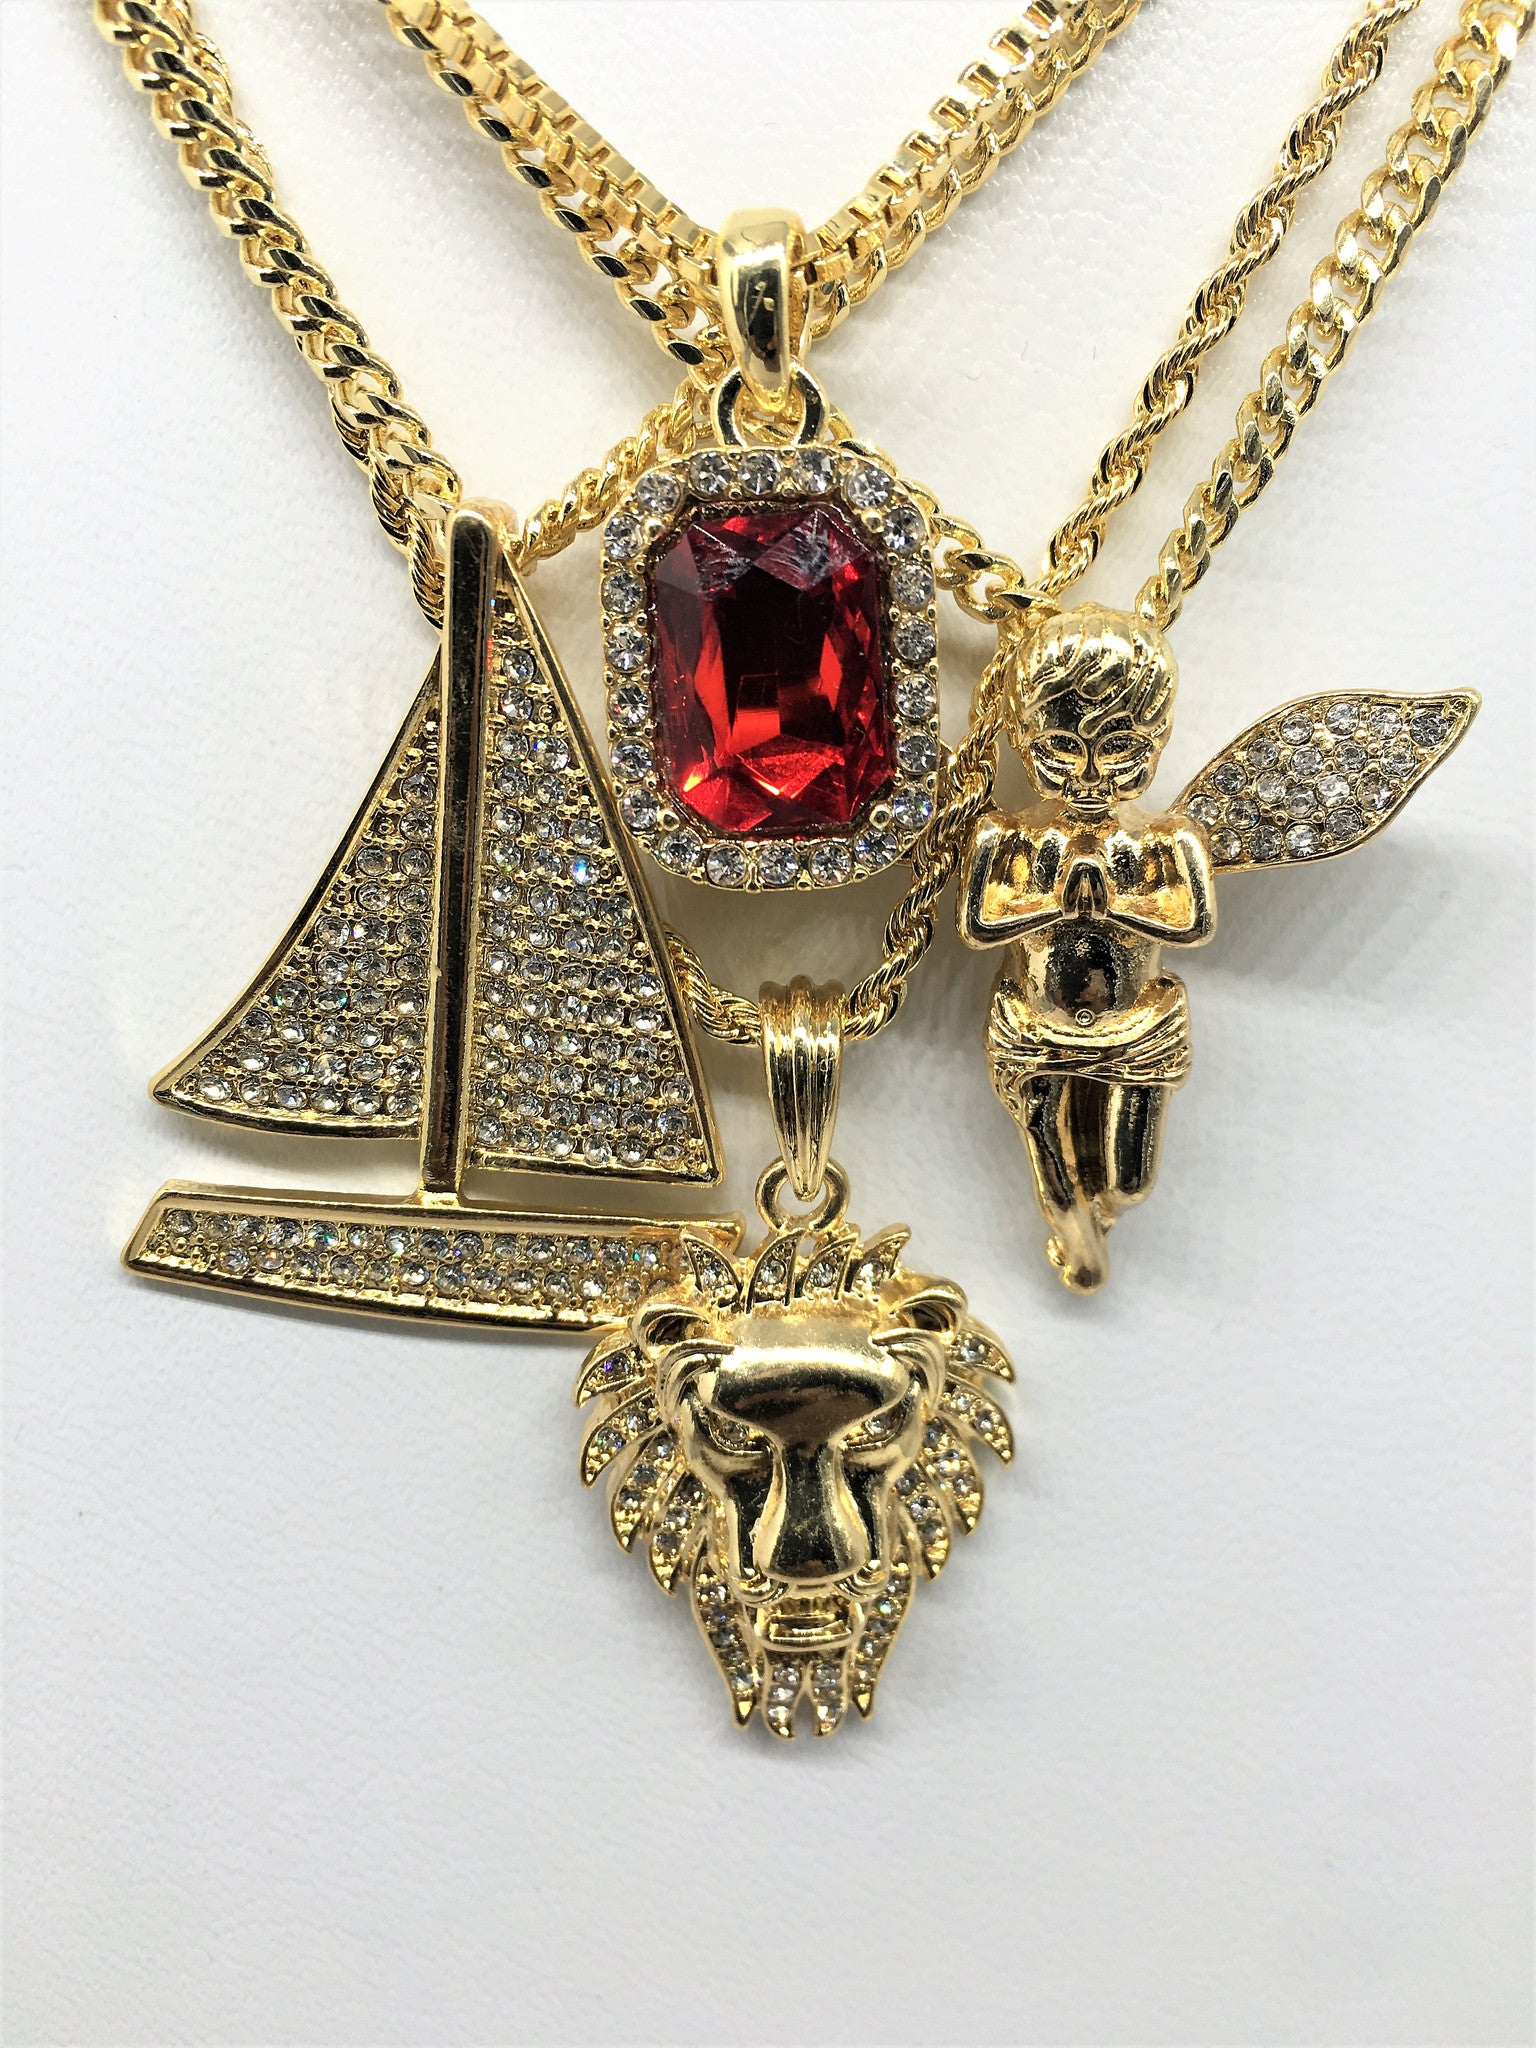 14K Gold Plated Lil Boat 4 Chain Combo Ruby Angel Lion And Lil Boat